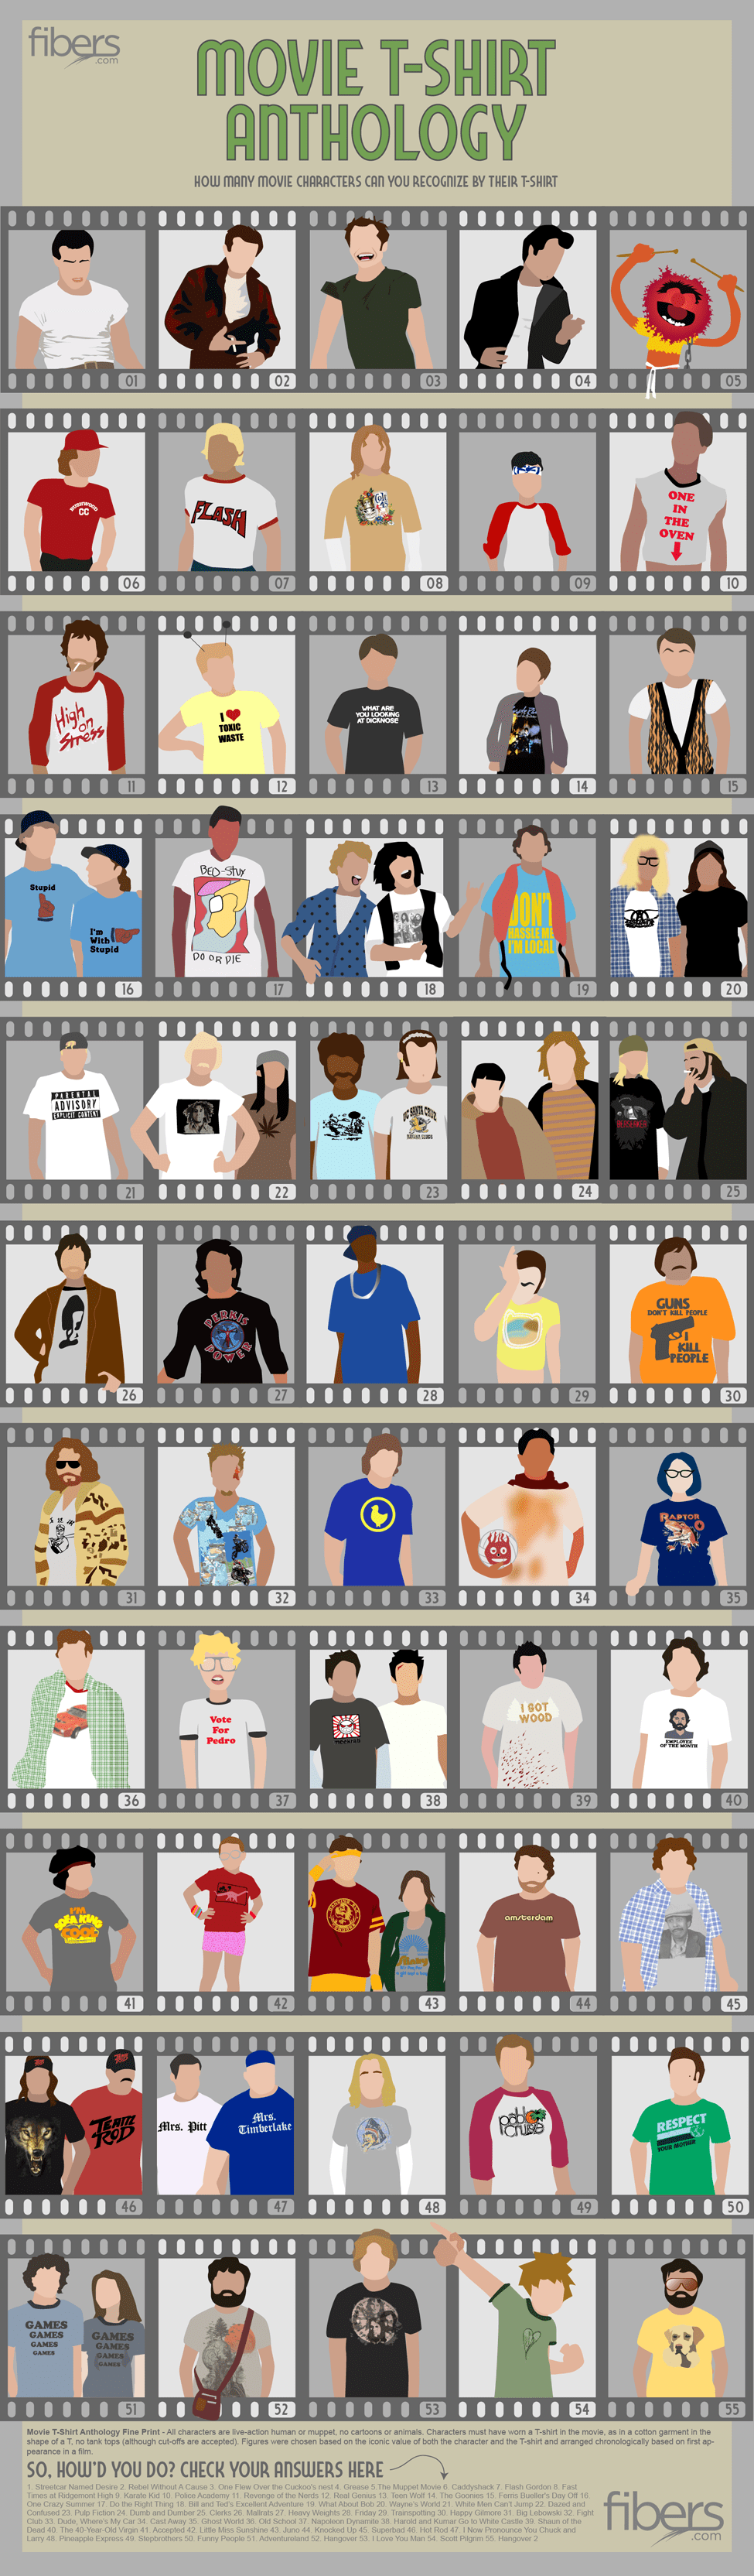 MovieTShirtAnthology_4ffc7a9685663